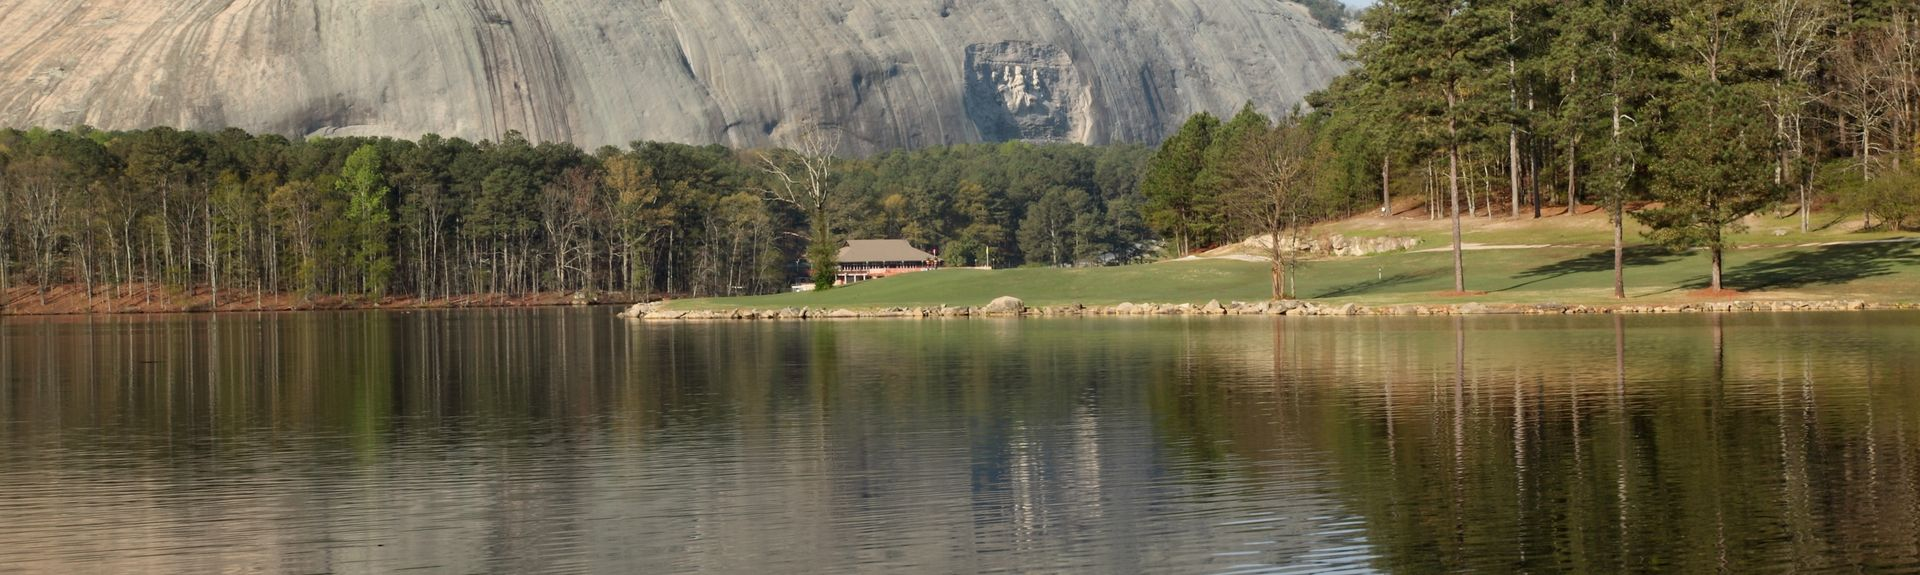 Stone Mountain, Georgia, USA